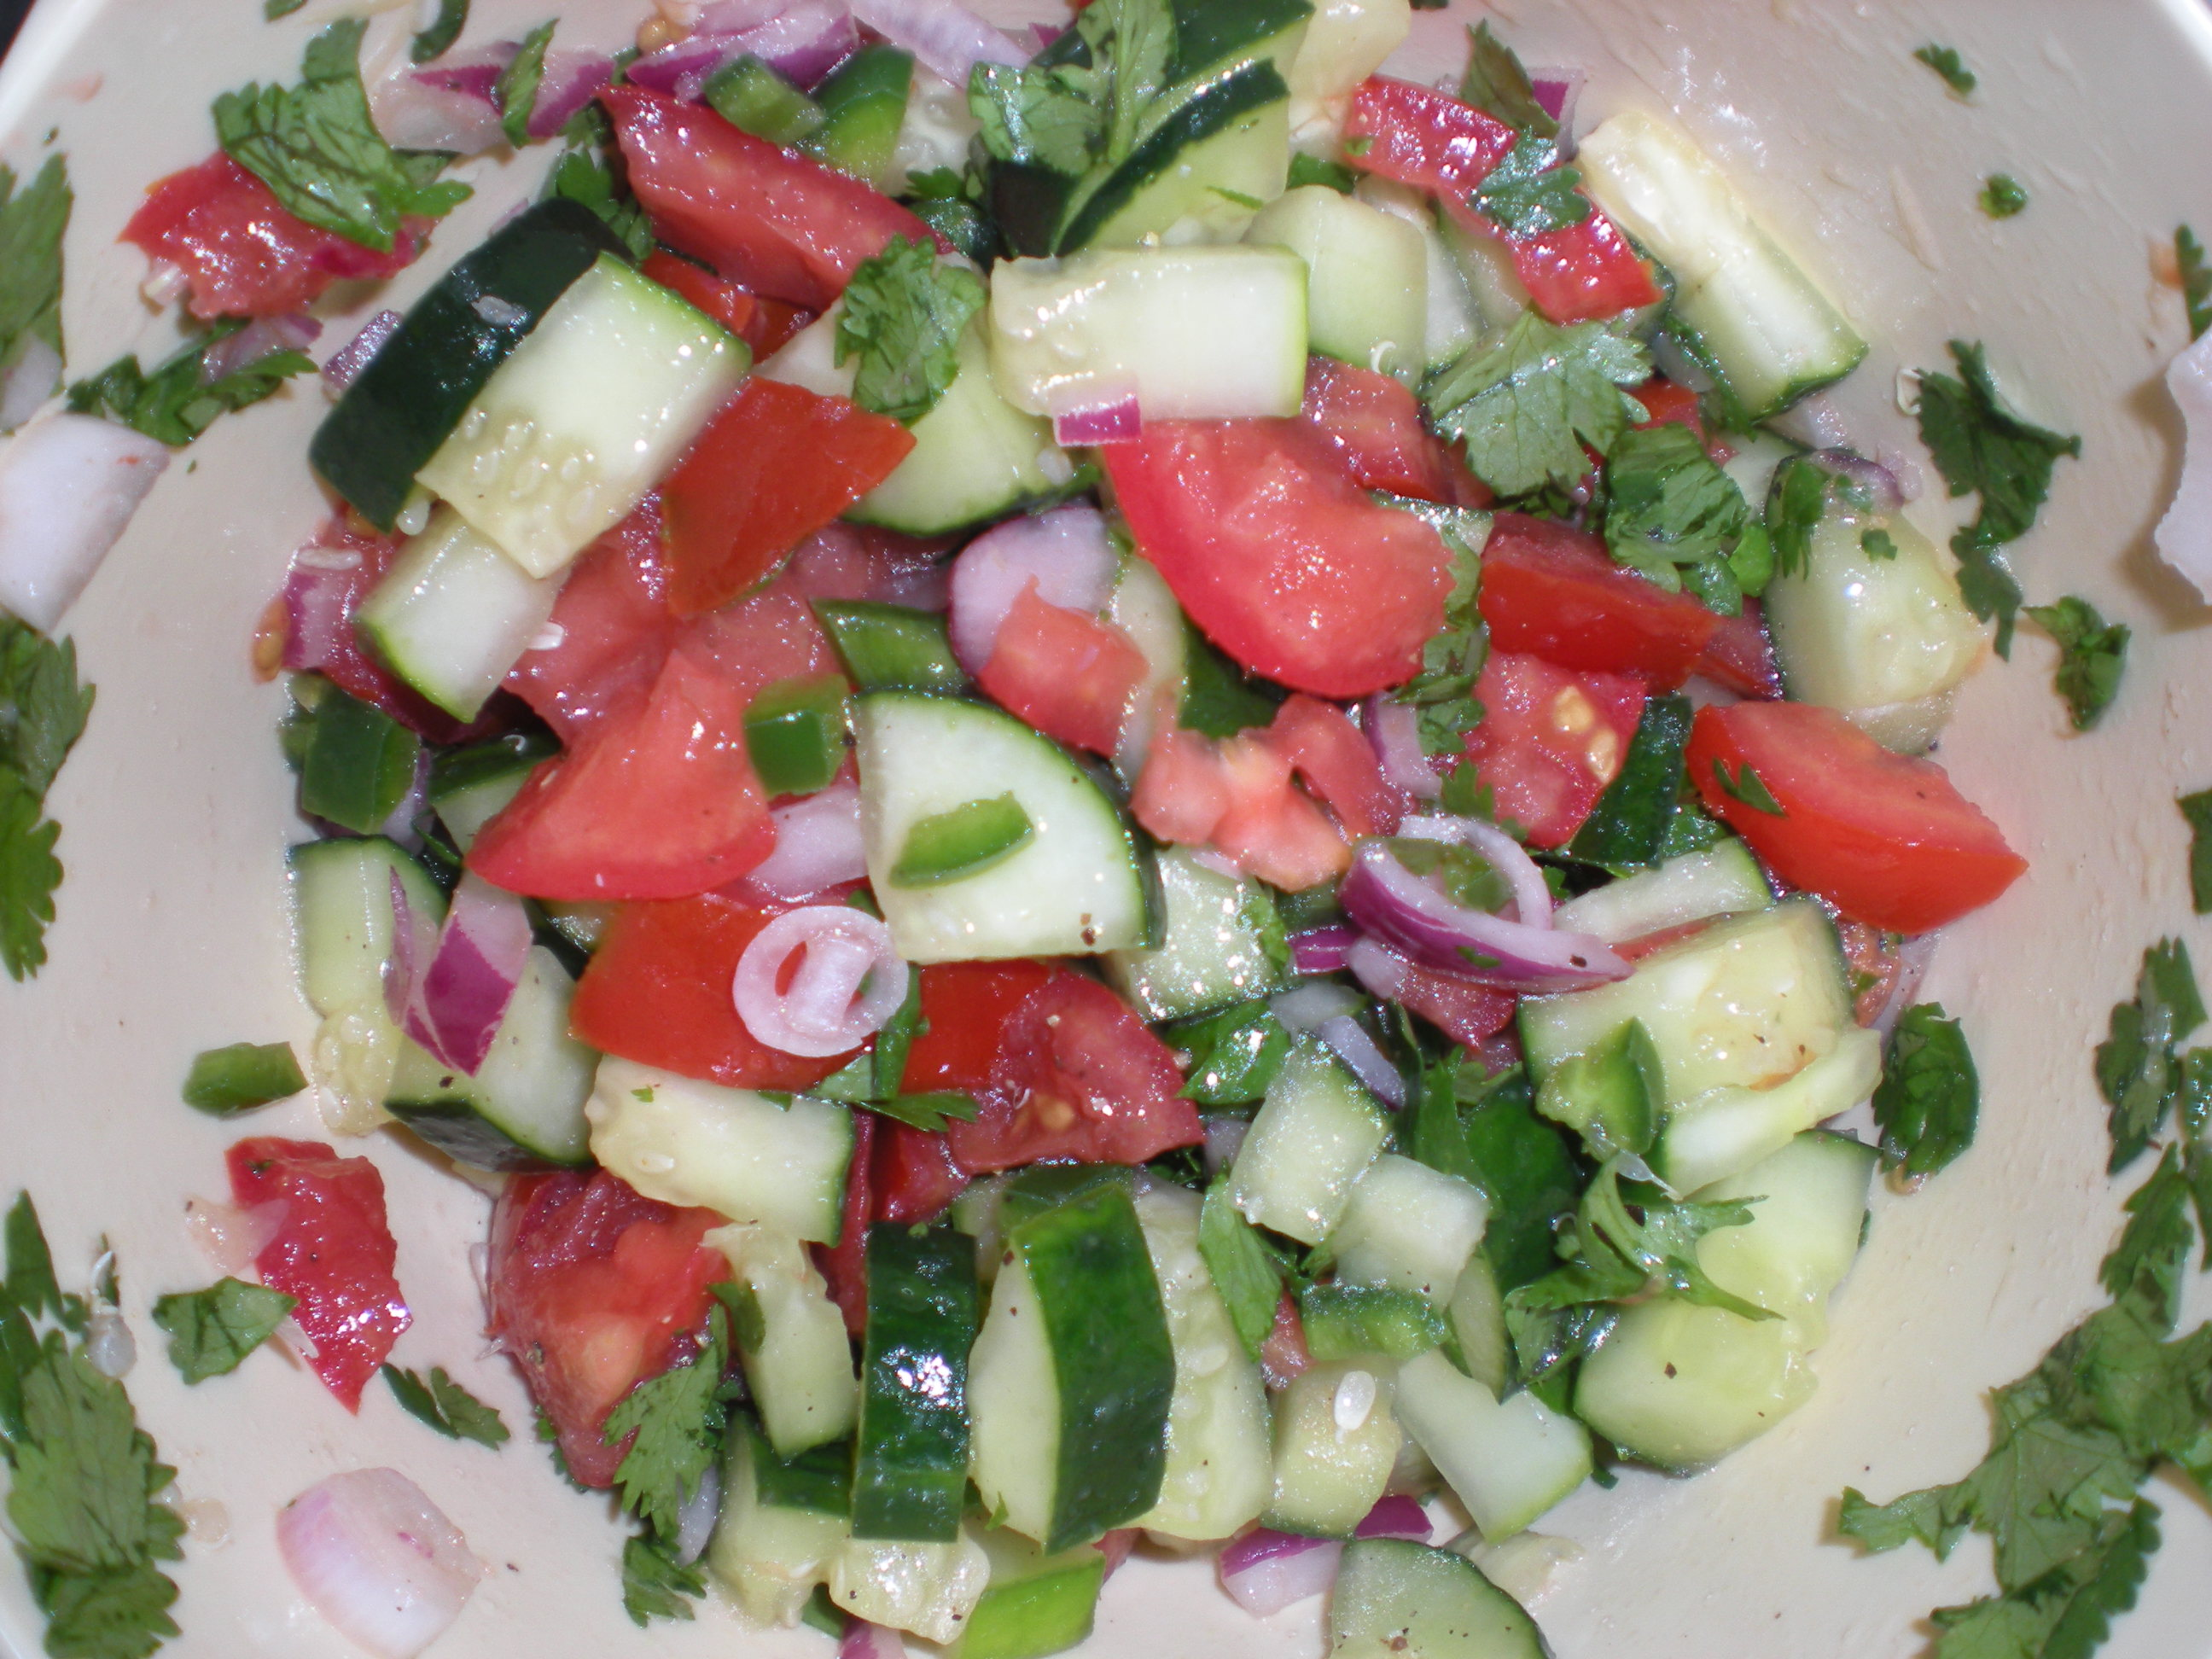 Spicy Cucumber and Tomato Salad & Gazpacho | A Girl's Gotta Eat